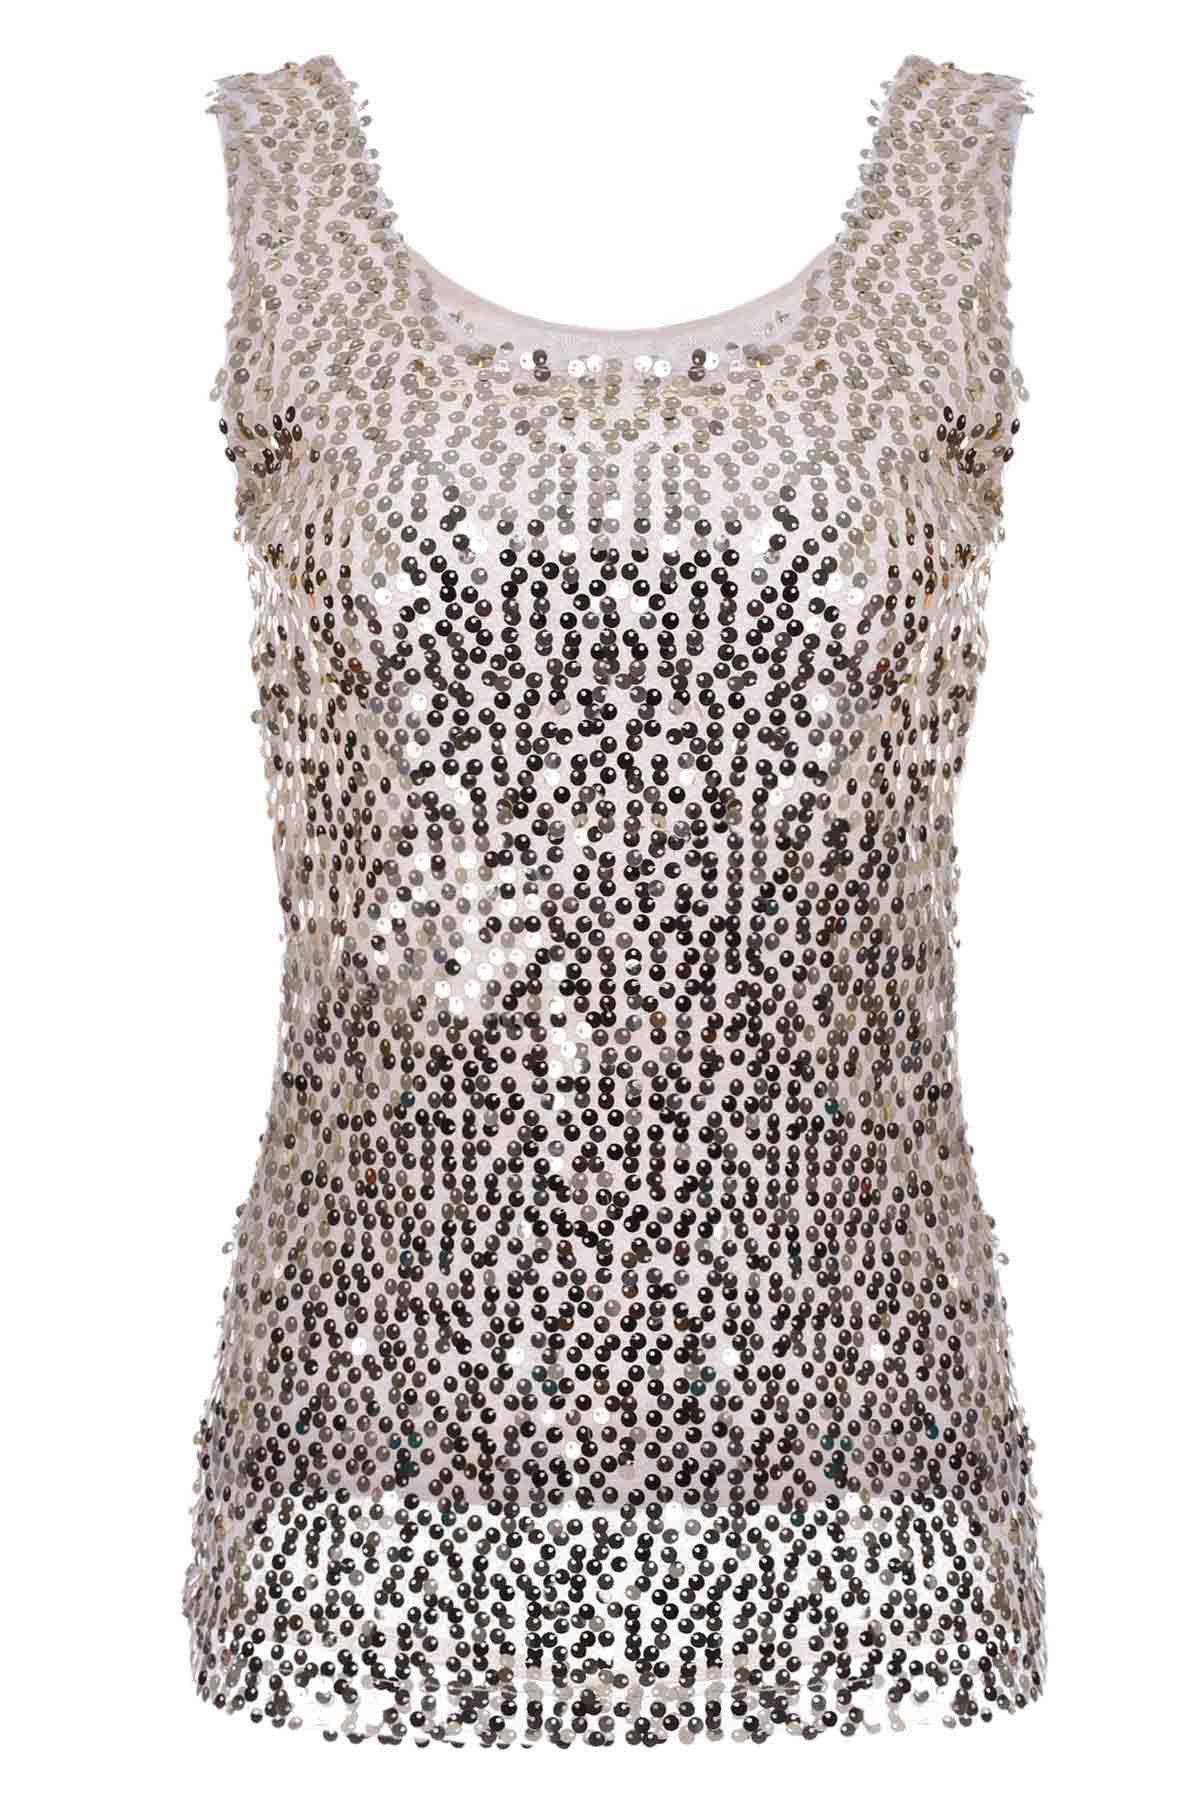 Chic Sleeveless Scoop Neck Sequins Embellished Women's Tank Top